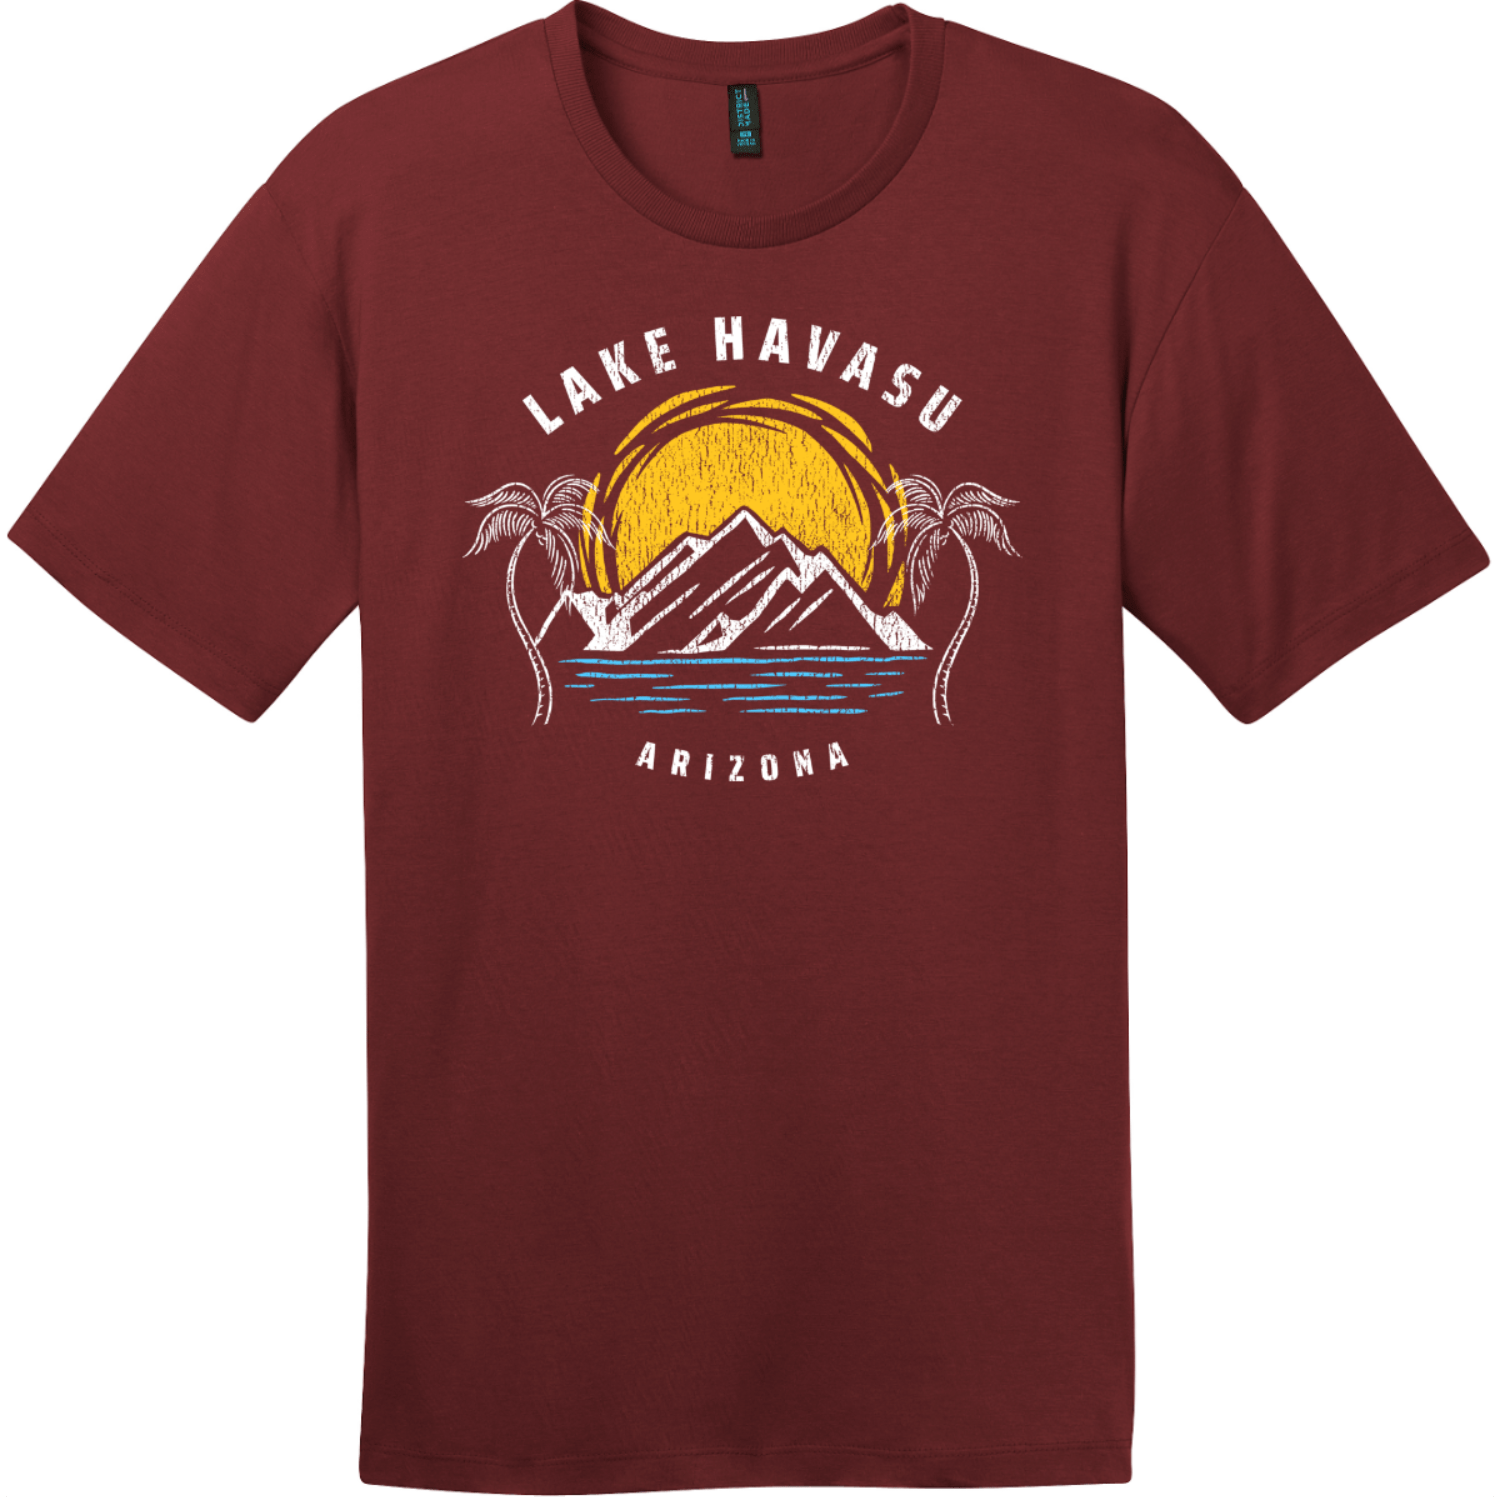 Lake Havasu Arizona T-Shirt Sangria District Perfect Weight Tee DT104